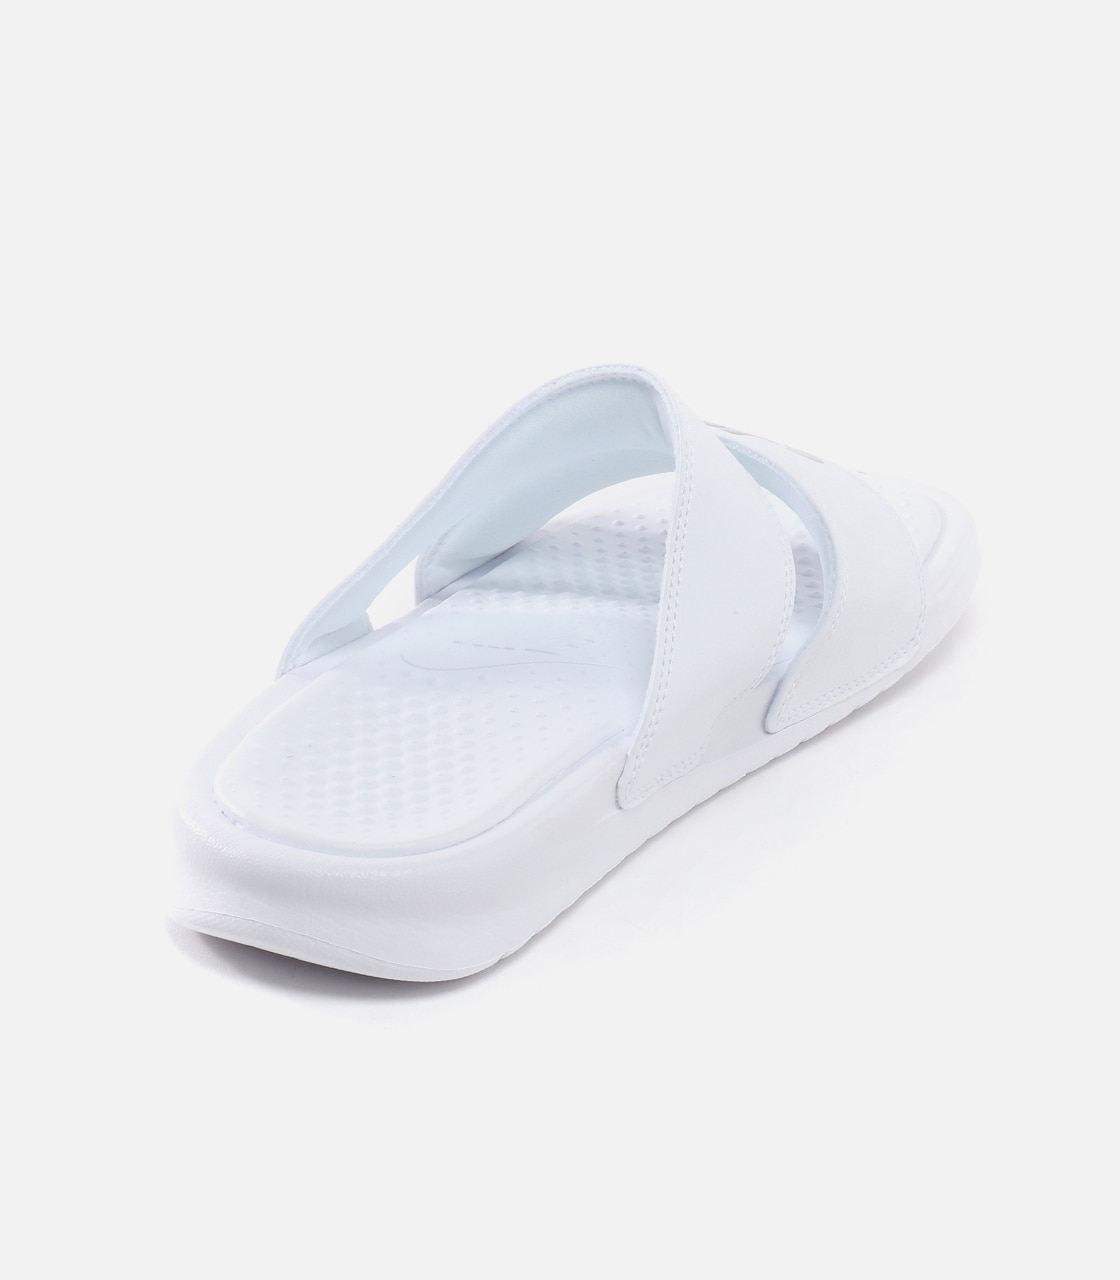 【AZUL BY MOUSSY】WIMNS NIKE BENASSI DUO ULTRA SLIDE 詳細画像 WHT 3